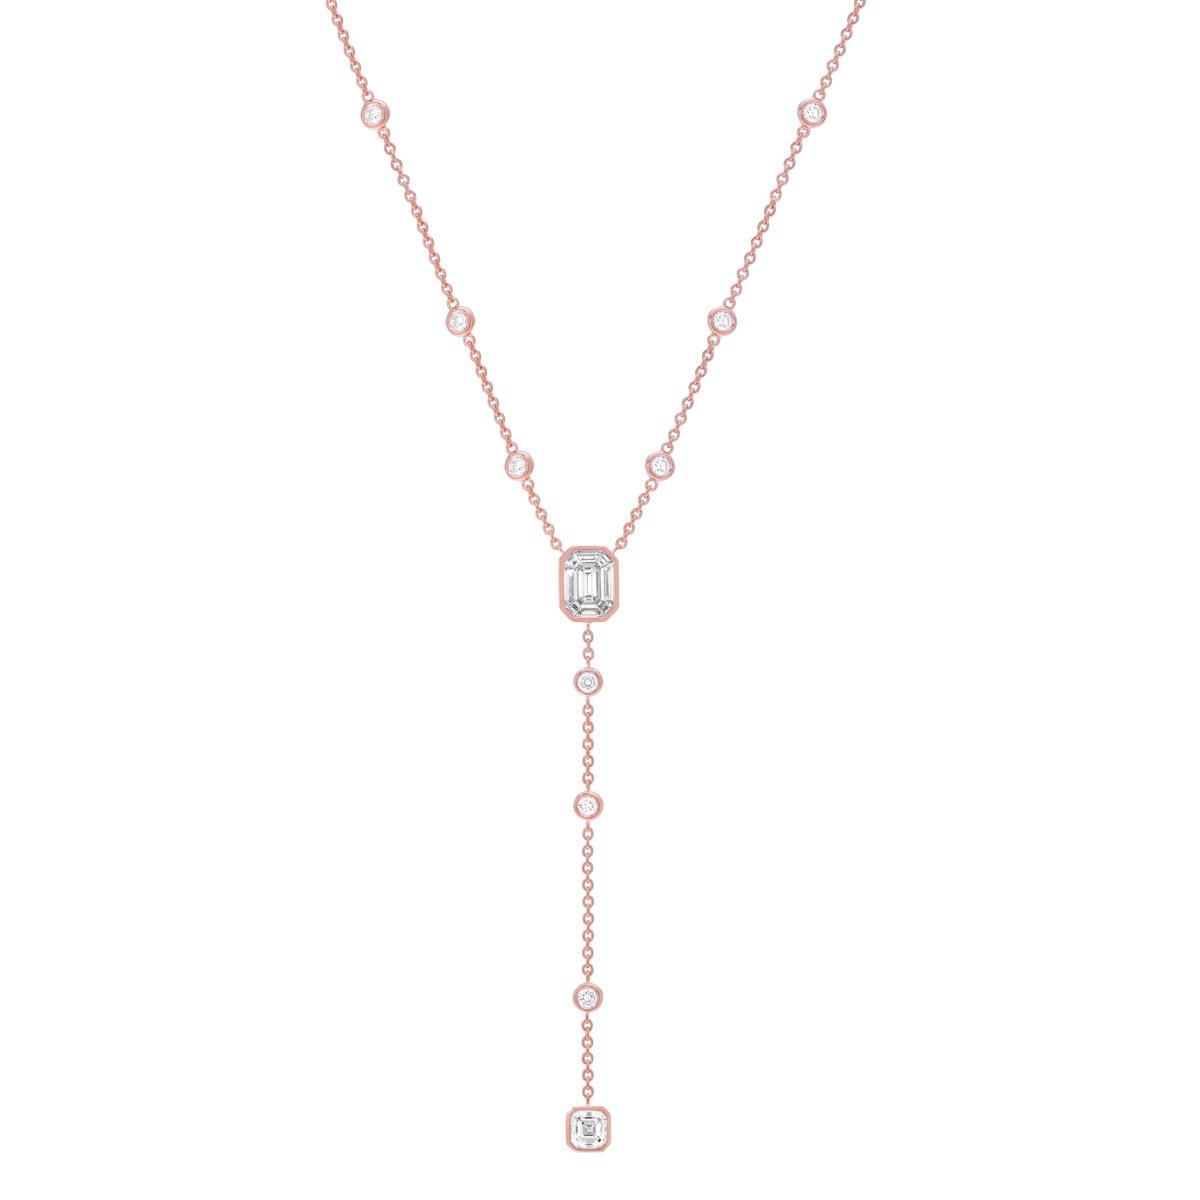 MUSE PINK Necklace - STENZHORN JEWELLERY